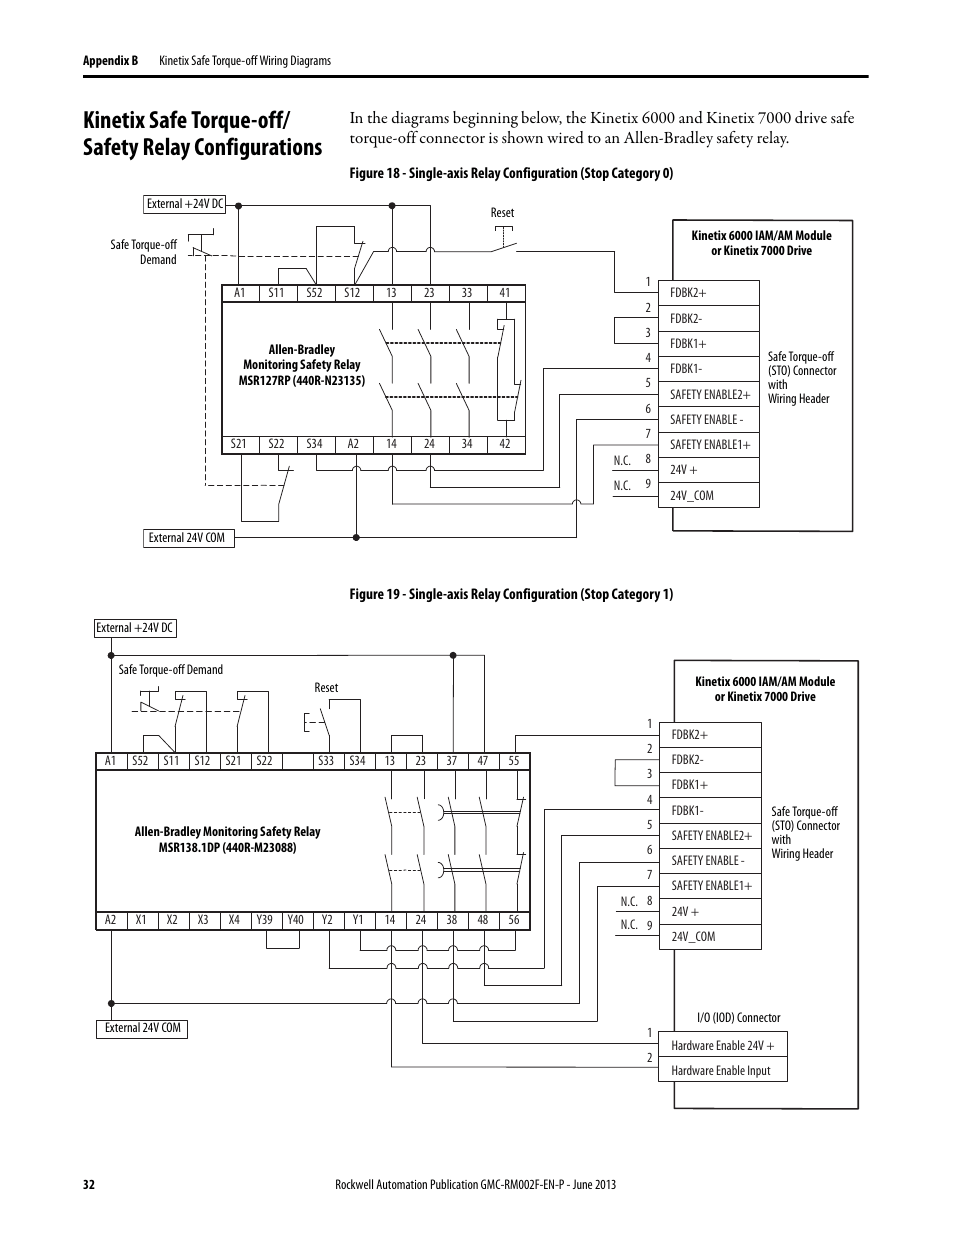 rockwell automation 2099 bmxx s kinetix safe torque off feature safety reference manual page32?resize=665%2C861 rockwell wiring diagram internet of things diagrams, electrical rockwell automation wiring diagrams at readyjetset.co